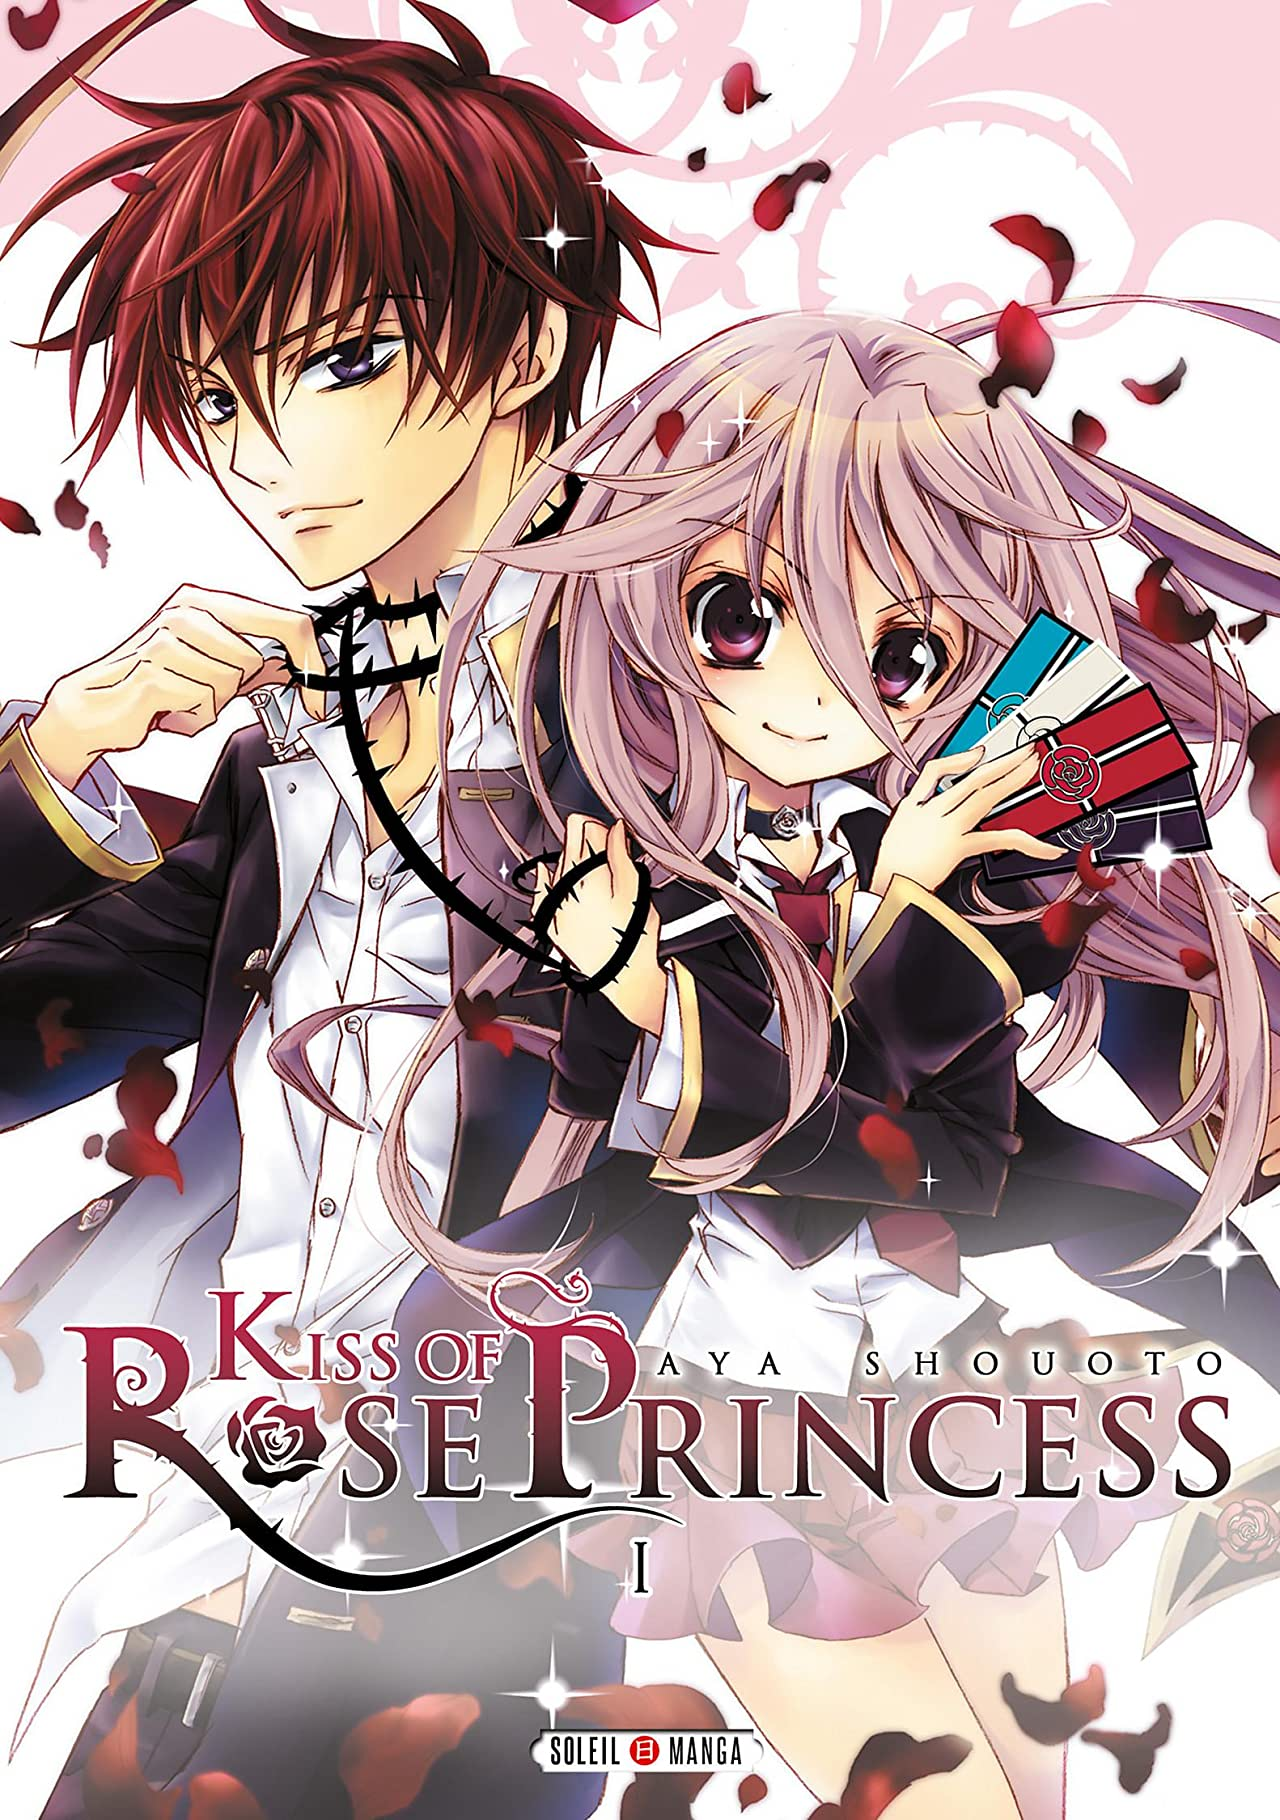 Kiss of Rose Princess Vol. 1